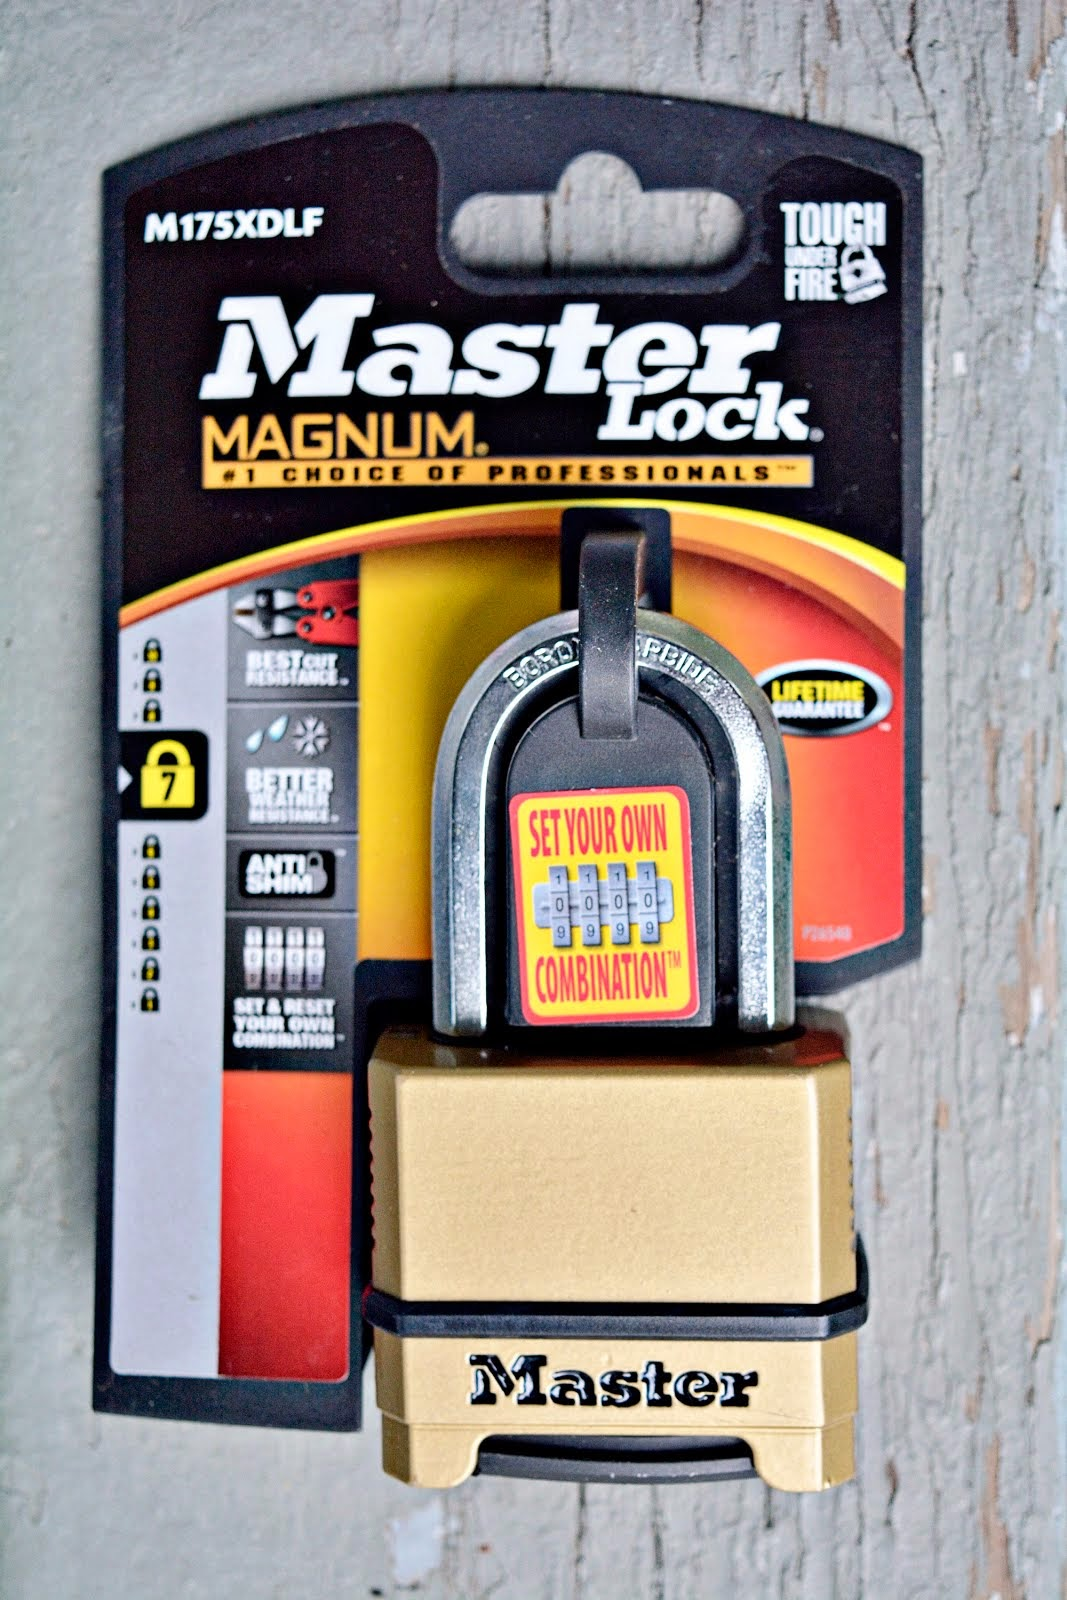 Enter To Win Master Lock!